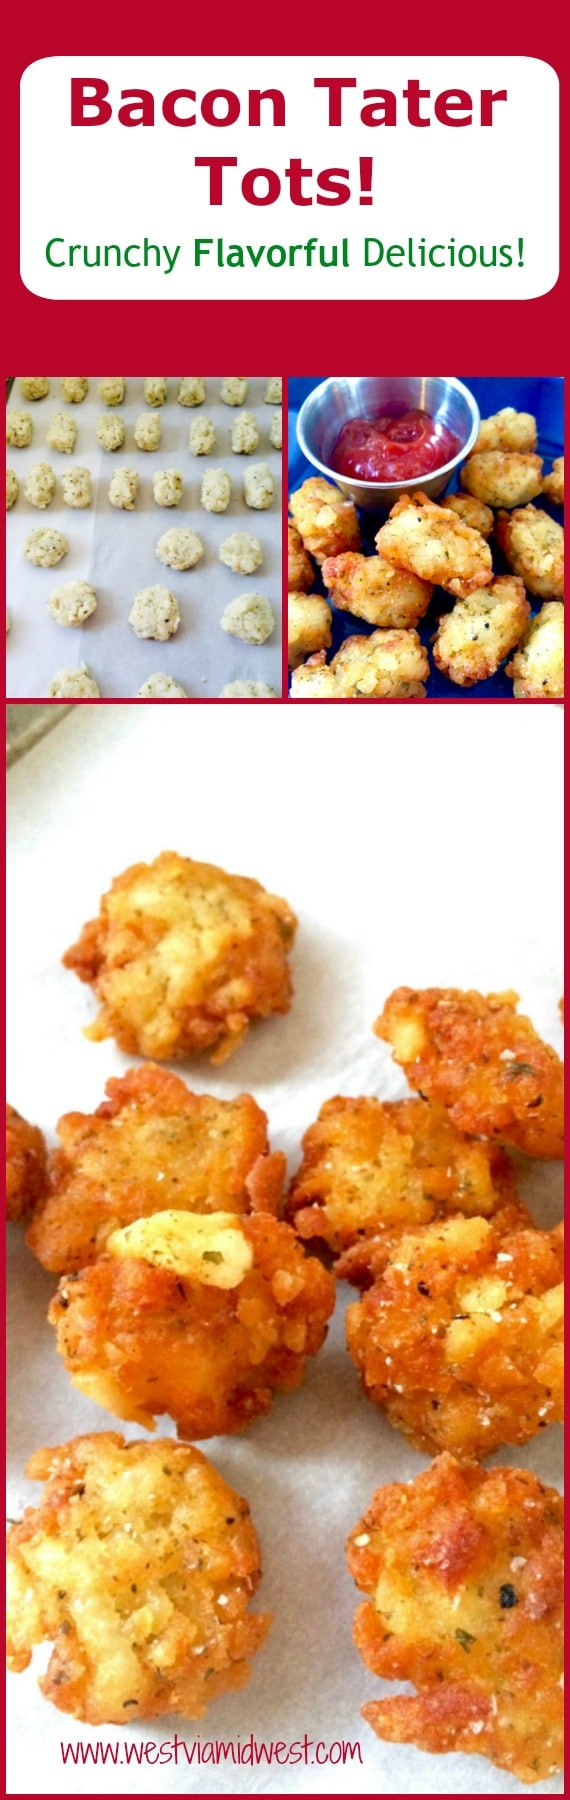 Crunchy Bite Sized Bacon Tots will be the hit of your next get together. Whether served as an appetizer or a side dish you will LOVE these crunchy, bacon filled tots. Better than your average tot because it has Bacon in it too!